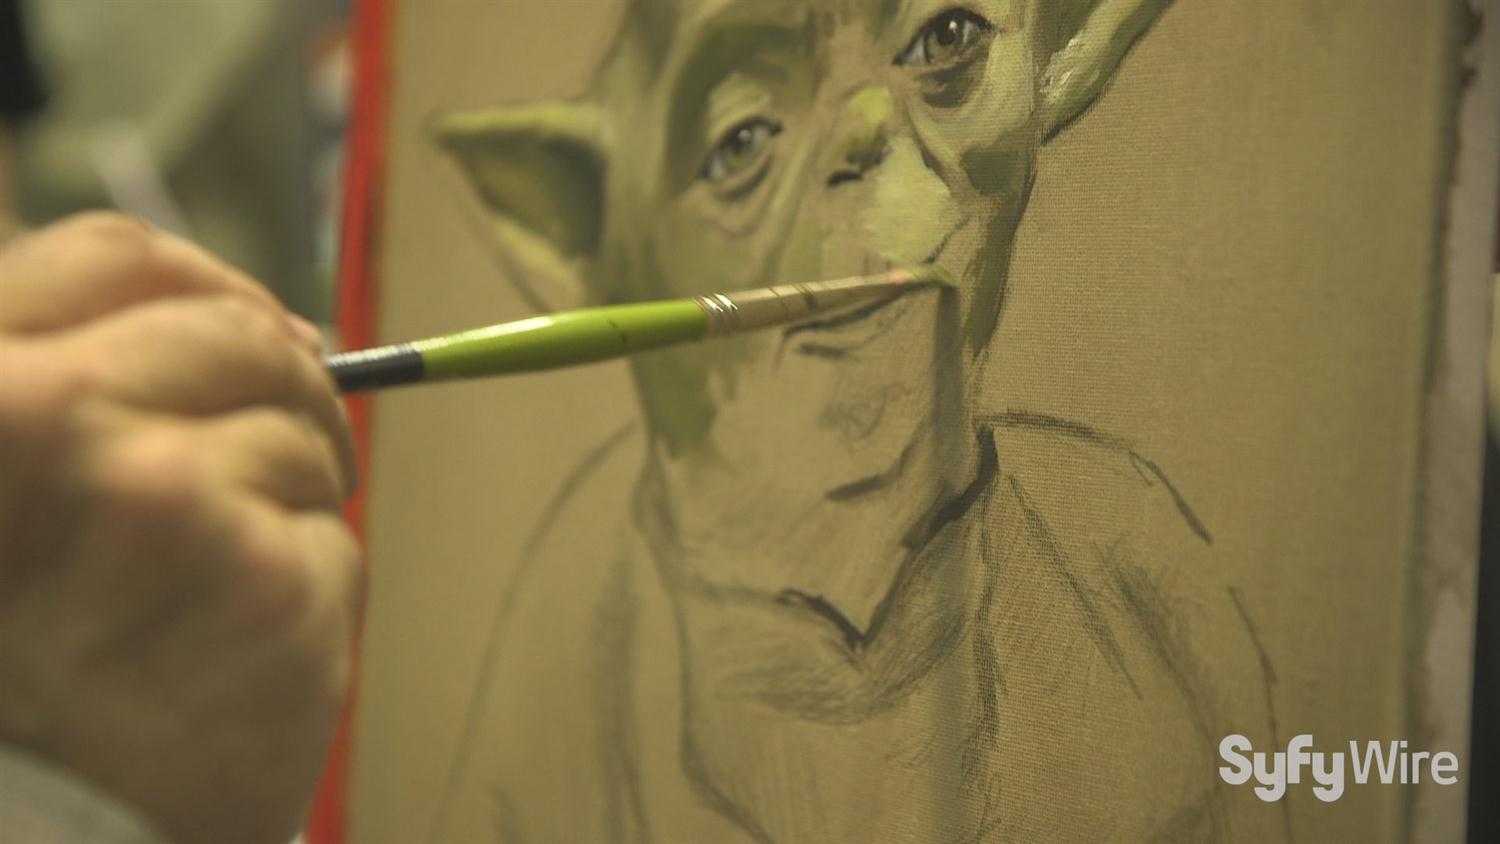 Watch Yoda from Star Wars Be Painted